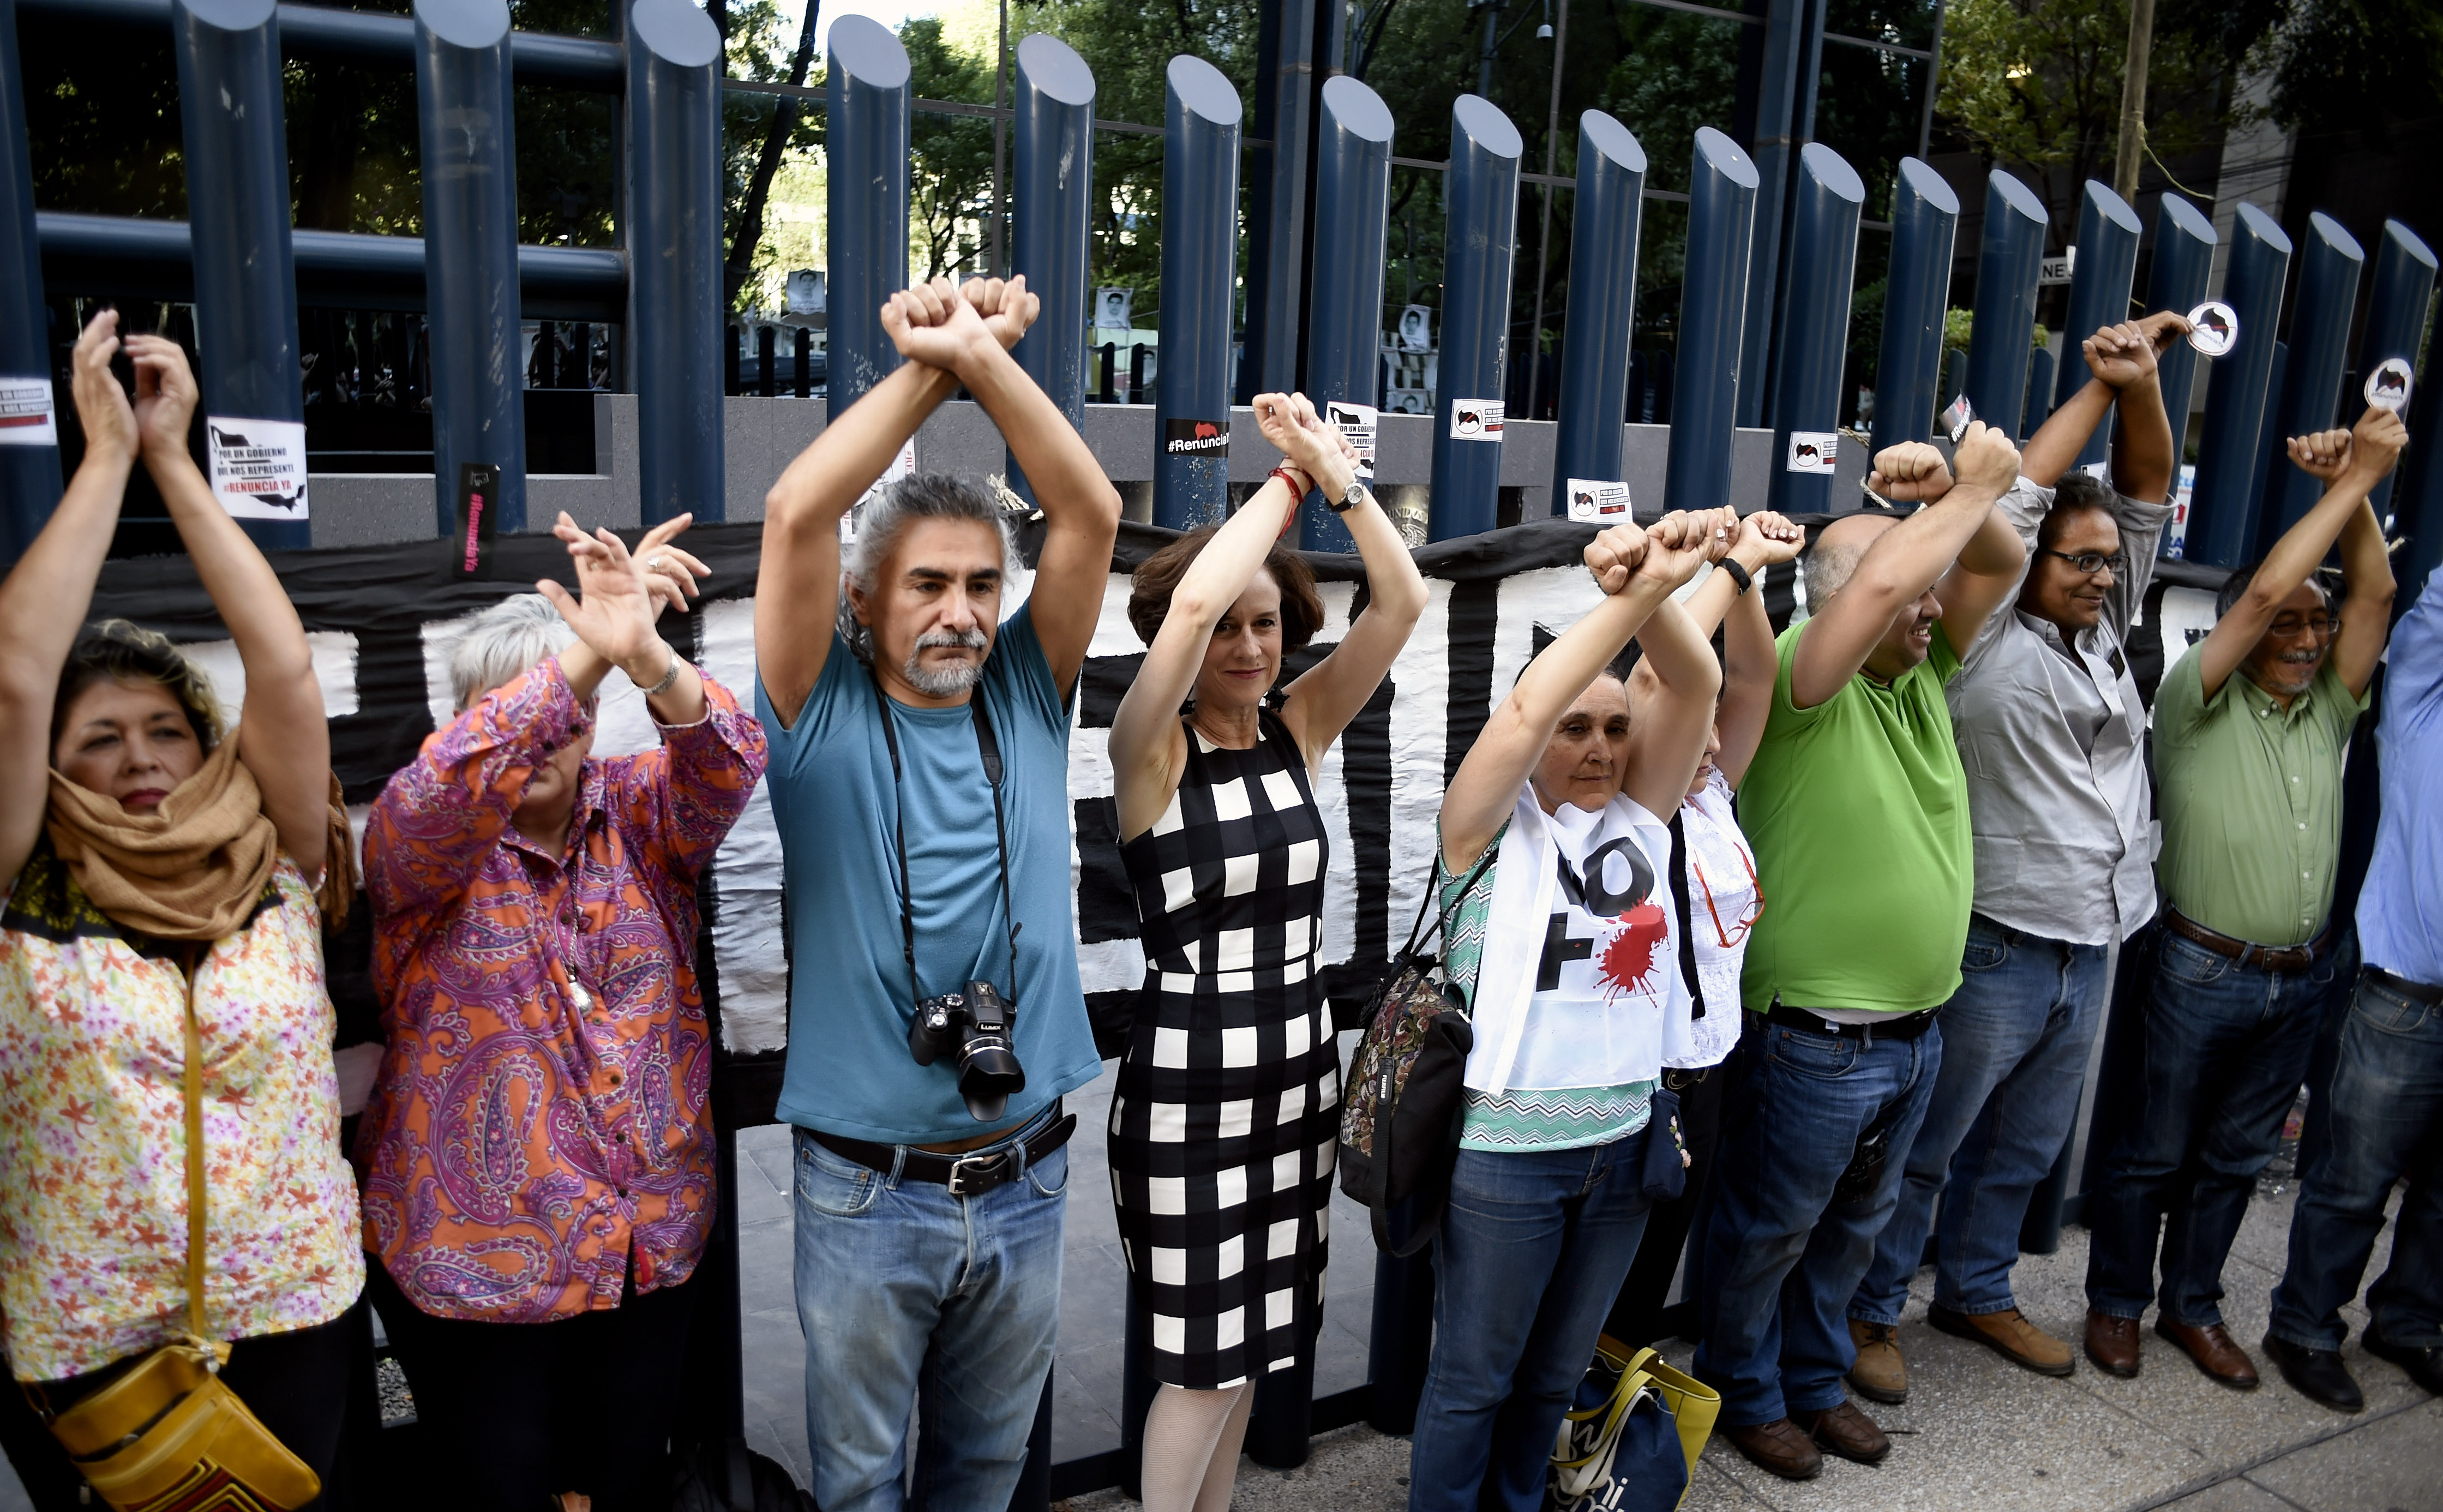 Civil society activists and journalists pretend to turn themselves in during a protest against alleged government spying on the media and human rights defenders, outside the attorney general's office in Mexico City on June 23, 2017. Mexican prosecutors said Wednesday they have opened an investigation into allegations the government spied on leading journalists, human rights activists and anti-corruption campaigners. / AFP PHOTO / ALFREDO ESTRELLA (Photo credit should read ALFREDO ESTRELLA/AFP/Getty Images)